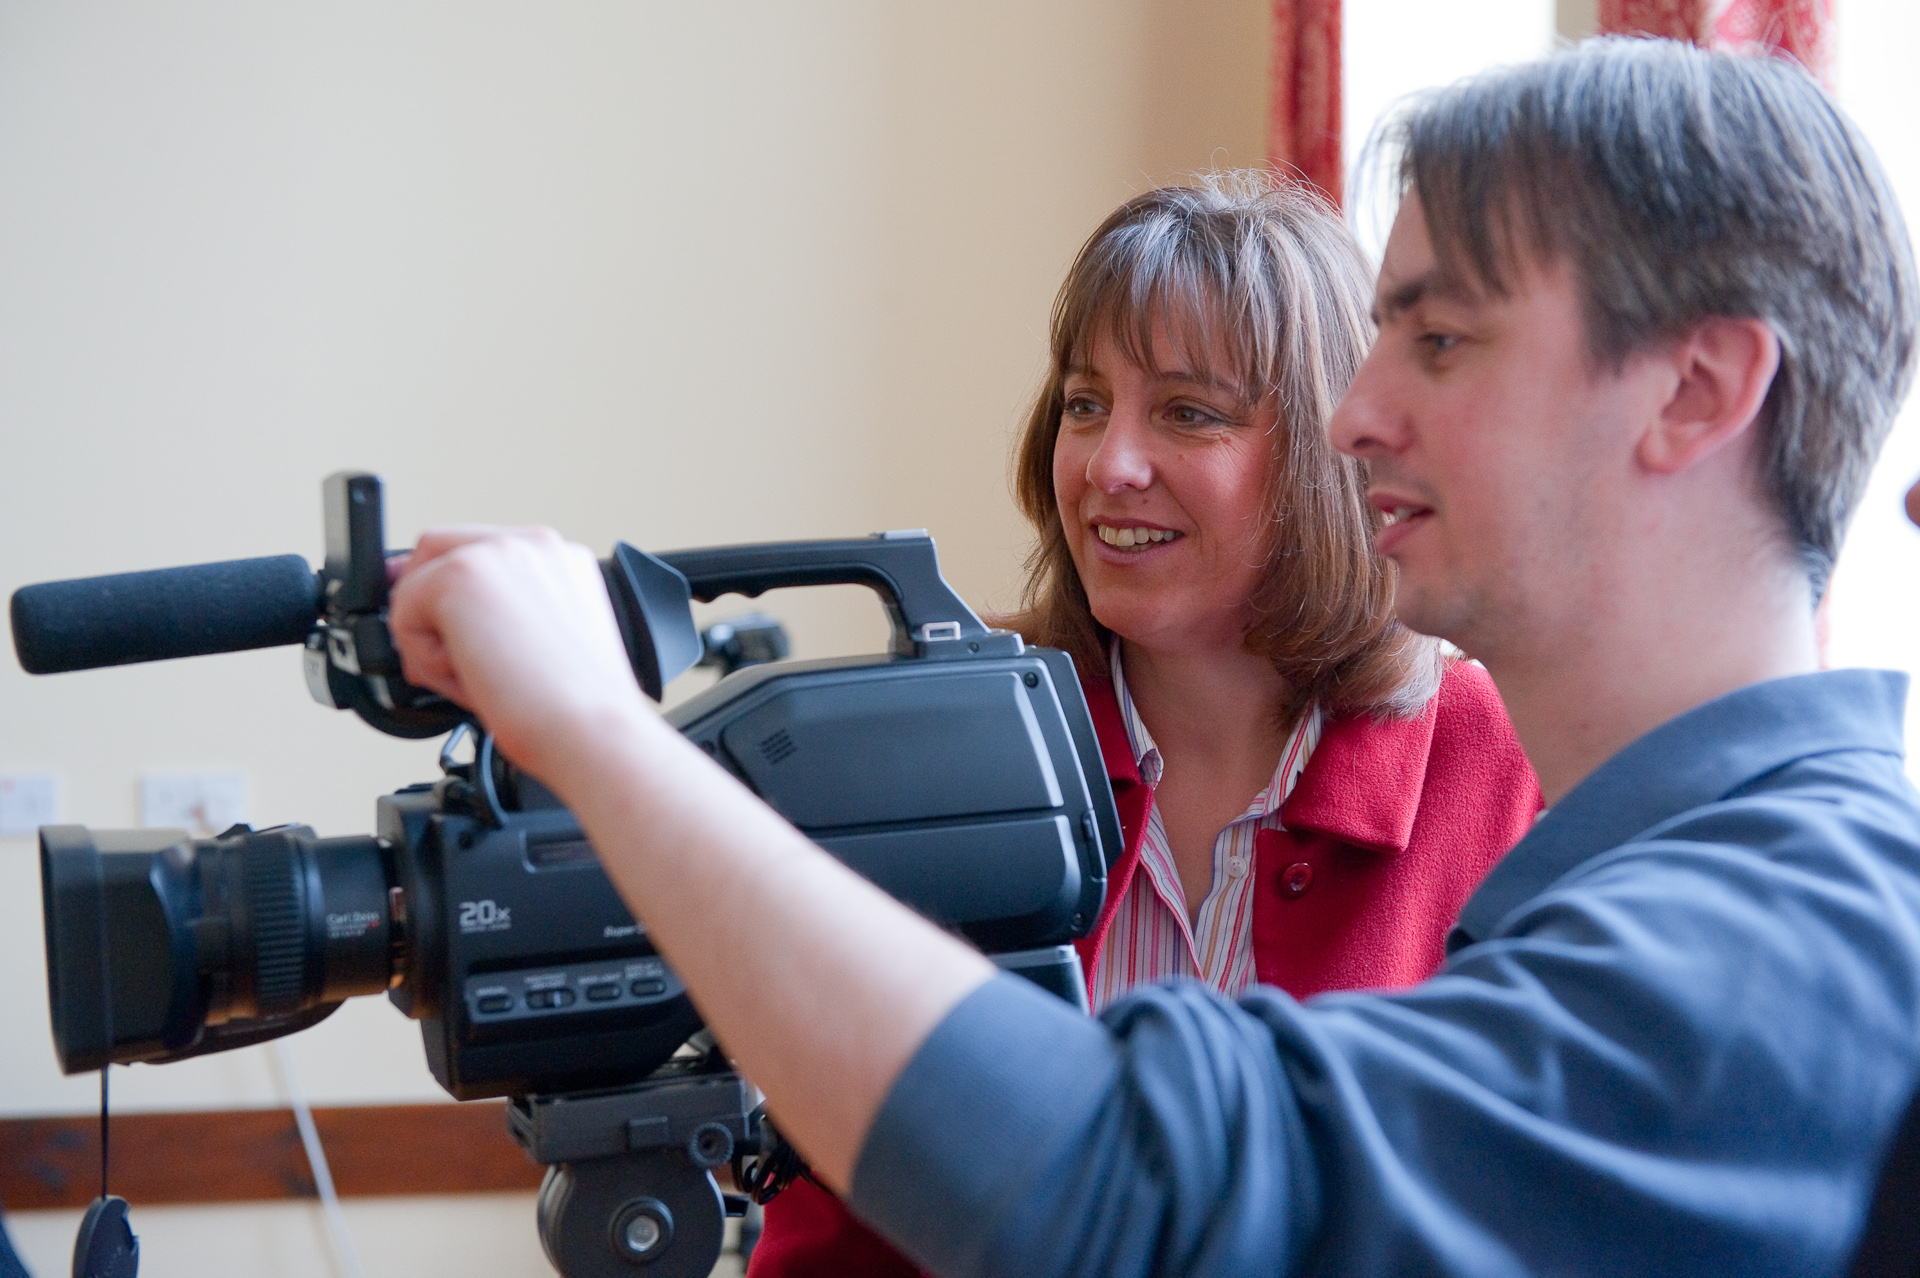 Video Producer, Mark and Client